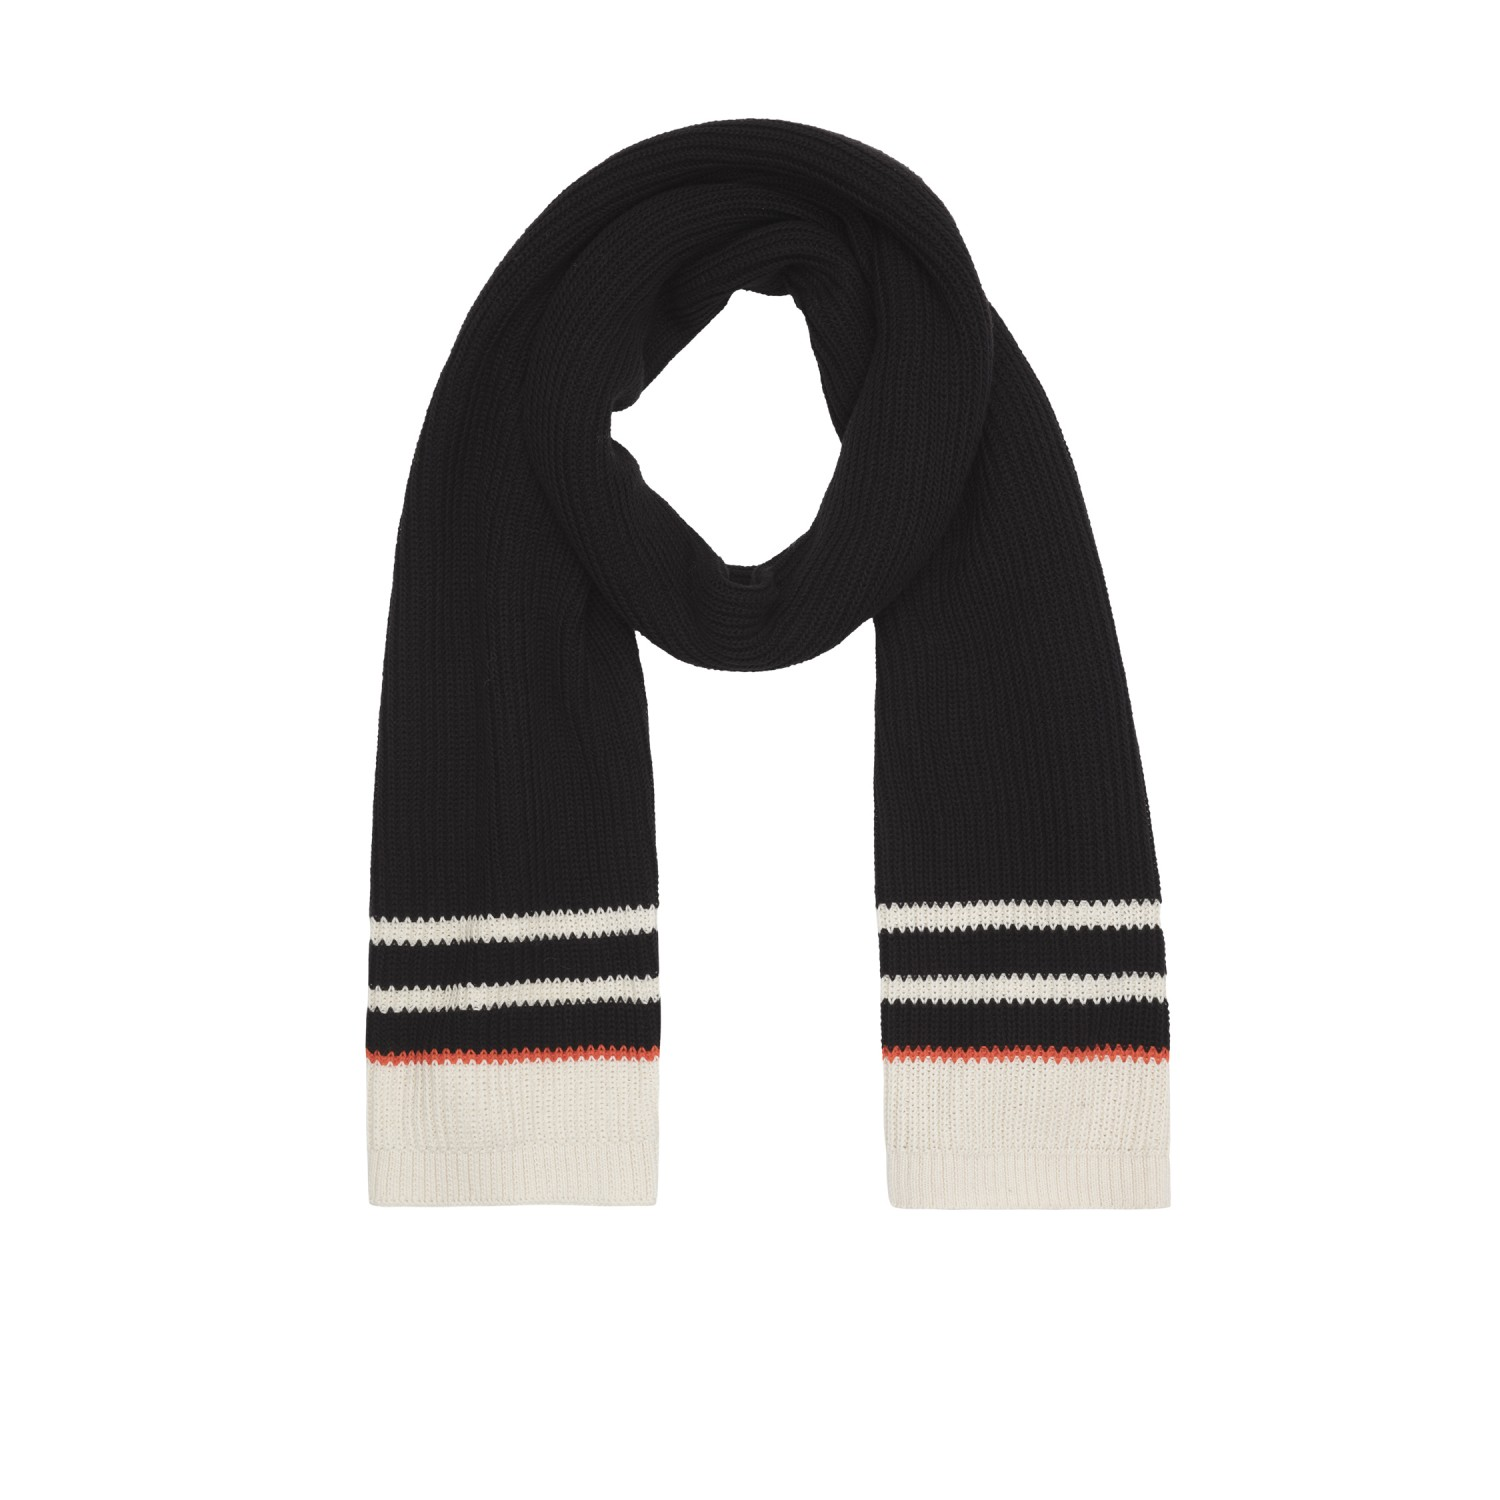 Knit Scarf black - Organic Cotton | People Tree